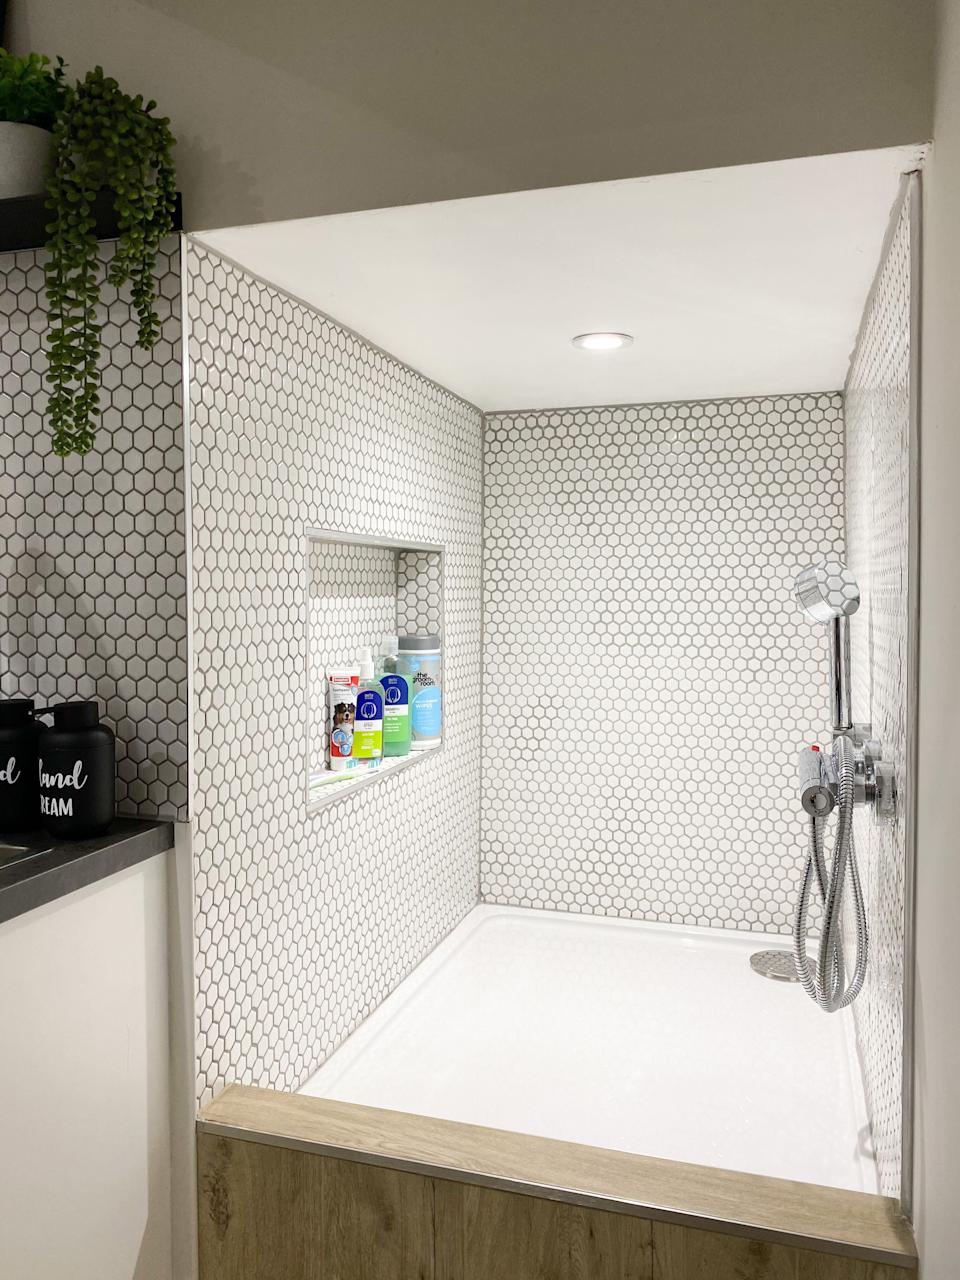 A close up of the shower space. (@homestuffonly and Drench)